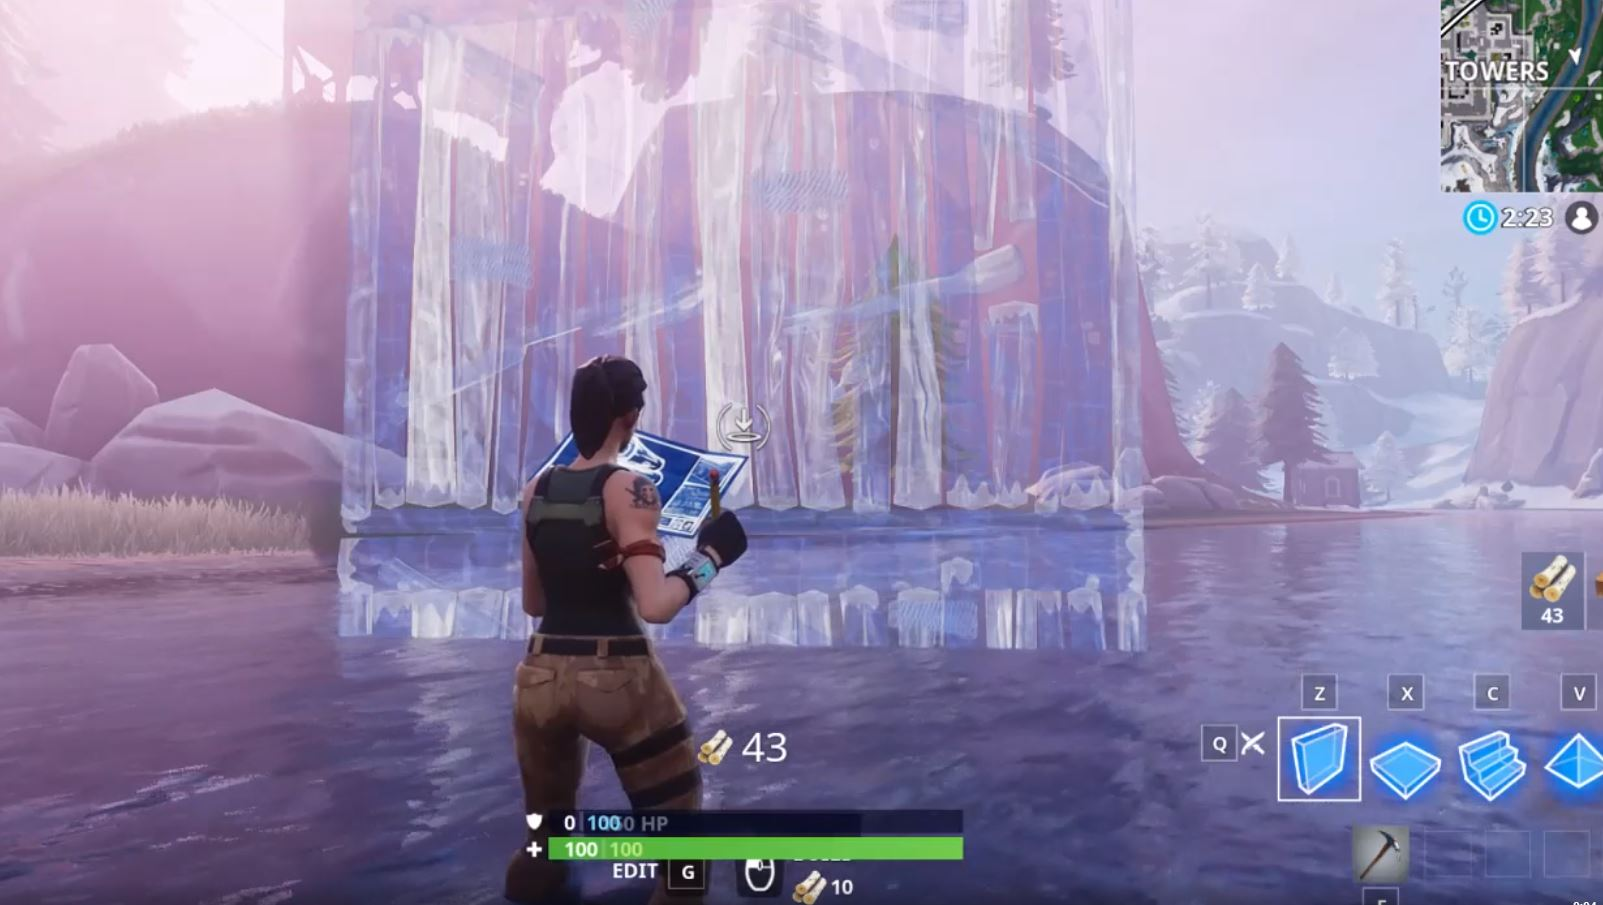 Fortnite Wall Placemnet After the v7.20 update